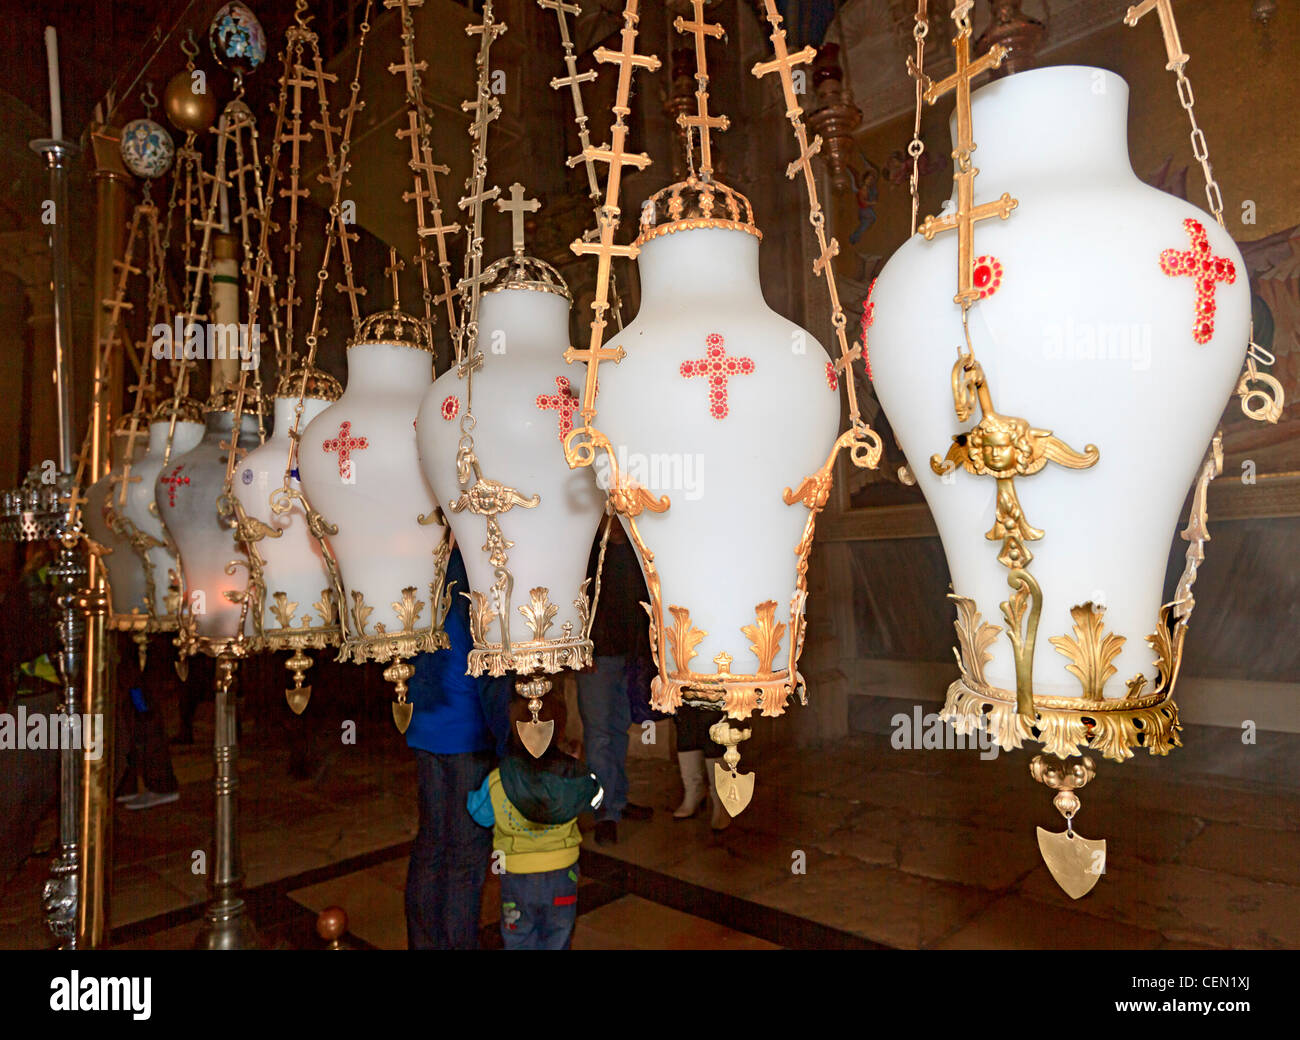 Lanterns above the Stone of Unction in the Church of the Holy Sepulchre, Old City Jerusalem, Israel Stock Photo